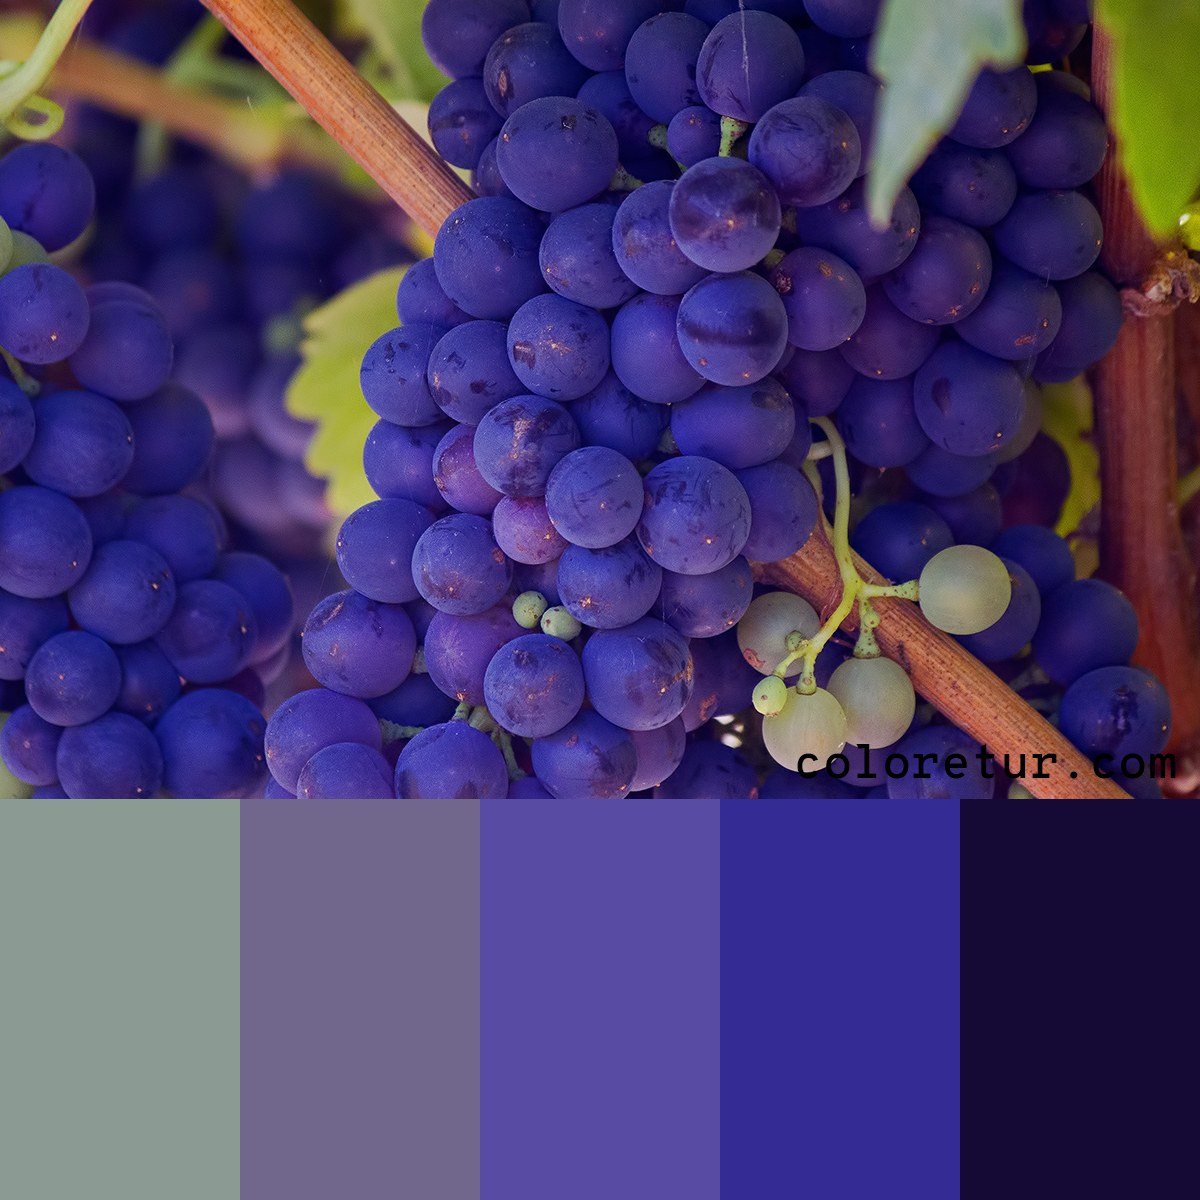 Swatches from a bunch of purple grapes